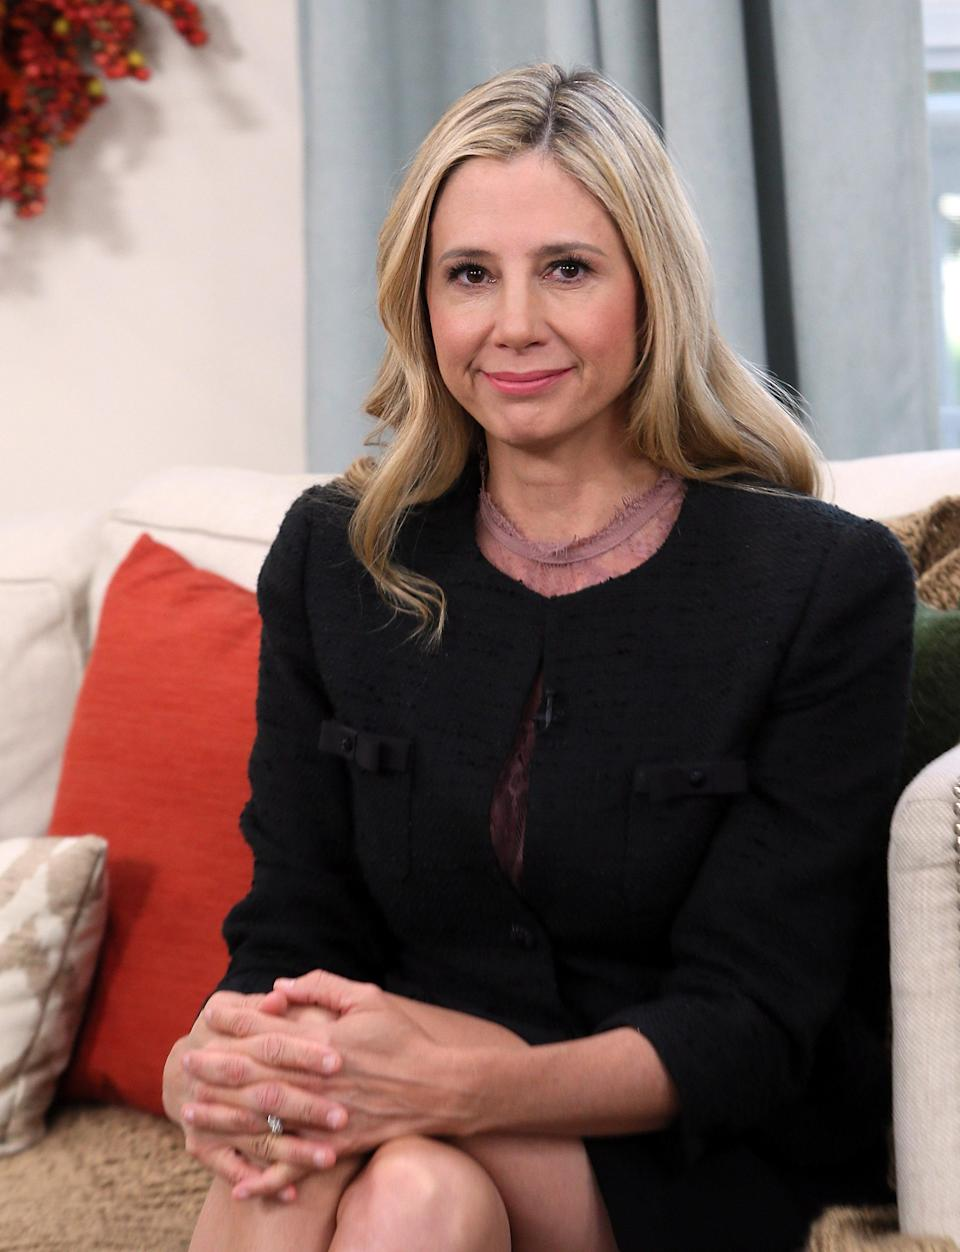 Mira Sorvino has accused Harvey Weinstein of sexual harassment. (Photo: Getty Images)